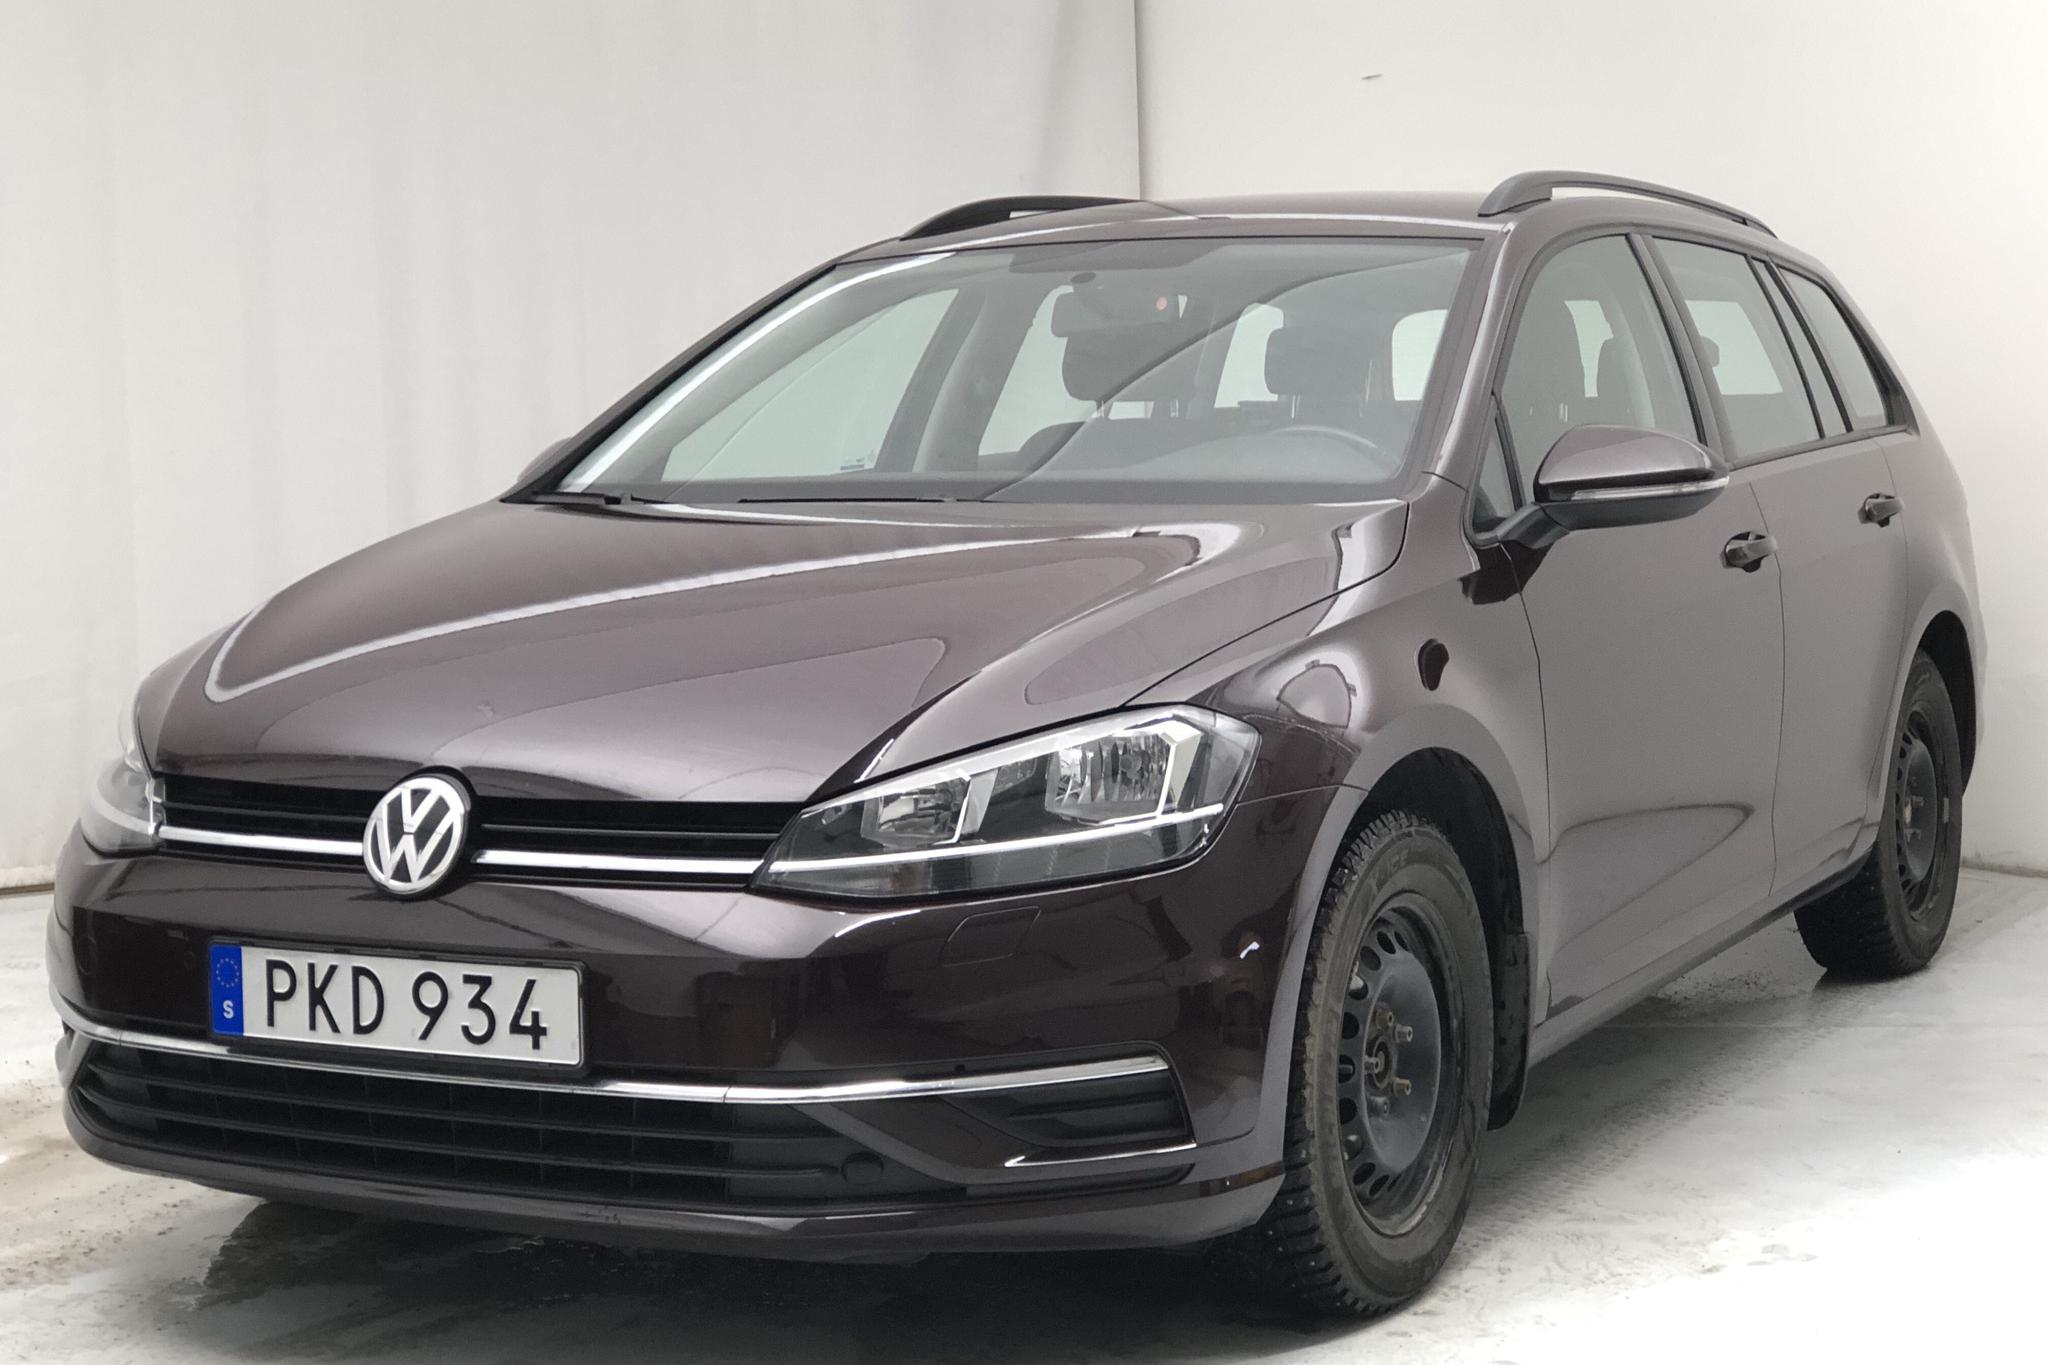 VW Golf VII 1.4 TSI Multifuel Sportscombi (125hk) - 31 950 km - Manual - black - 2017